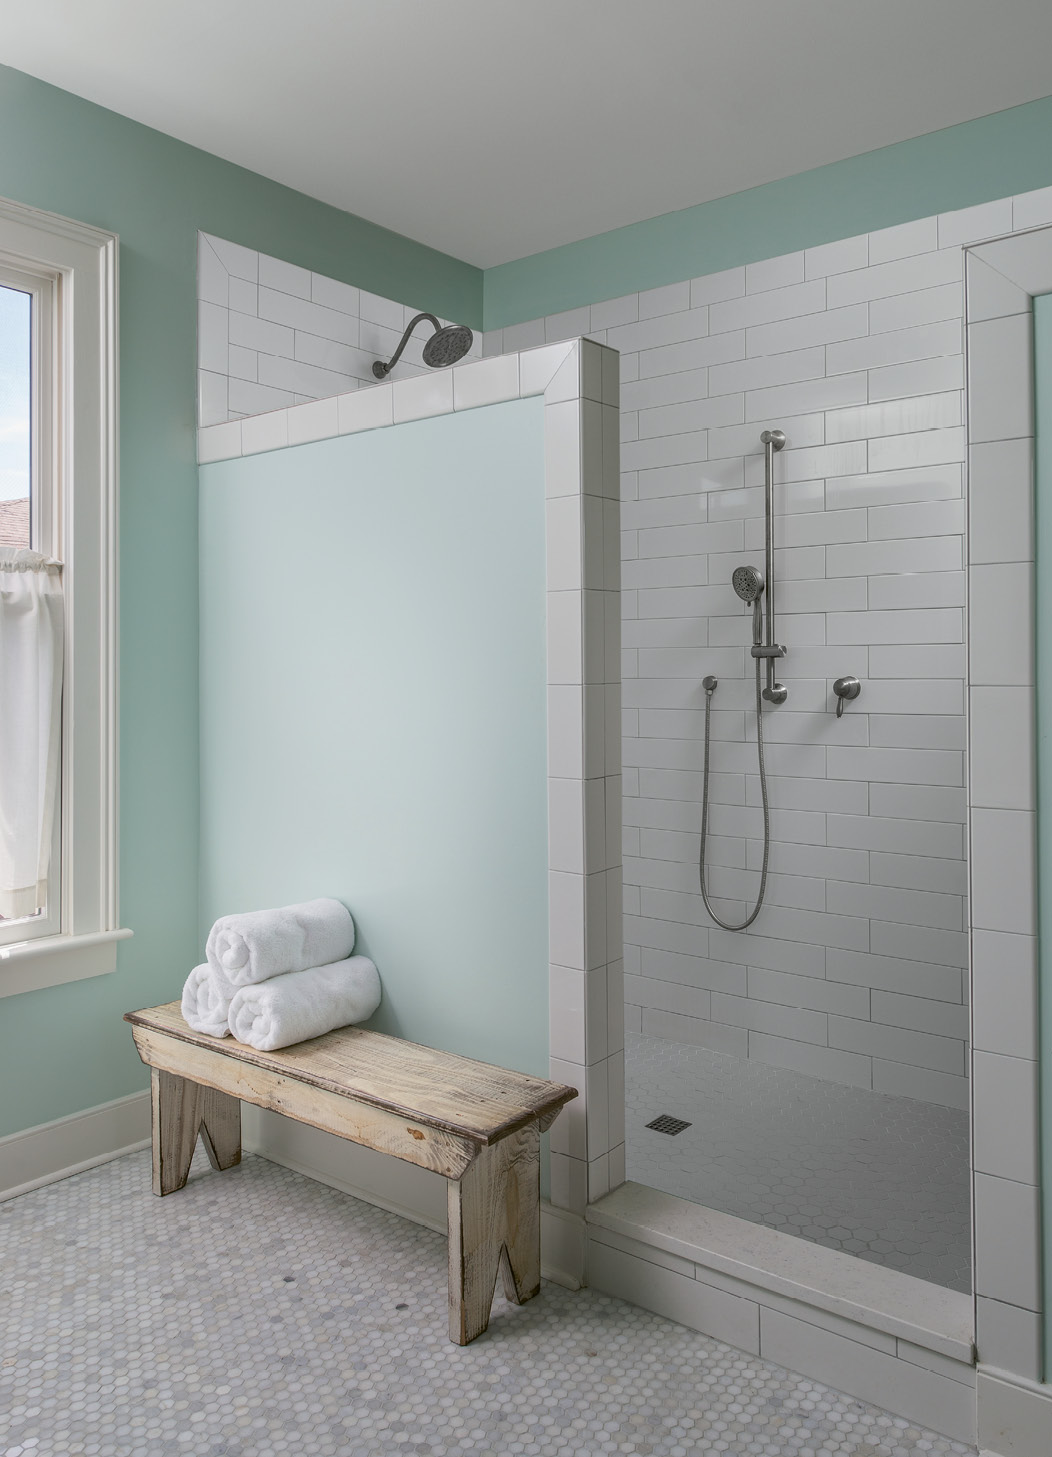 """A tiled shower with no glass door makes the bath low-maintenance. """"The design is a result of me hating to clean glass doors; I never wanted to see another squeegee again!"""" Cindy laughs."""